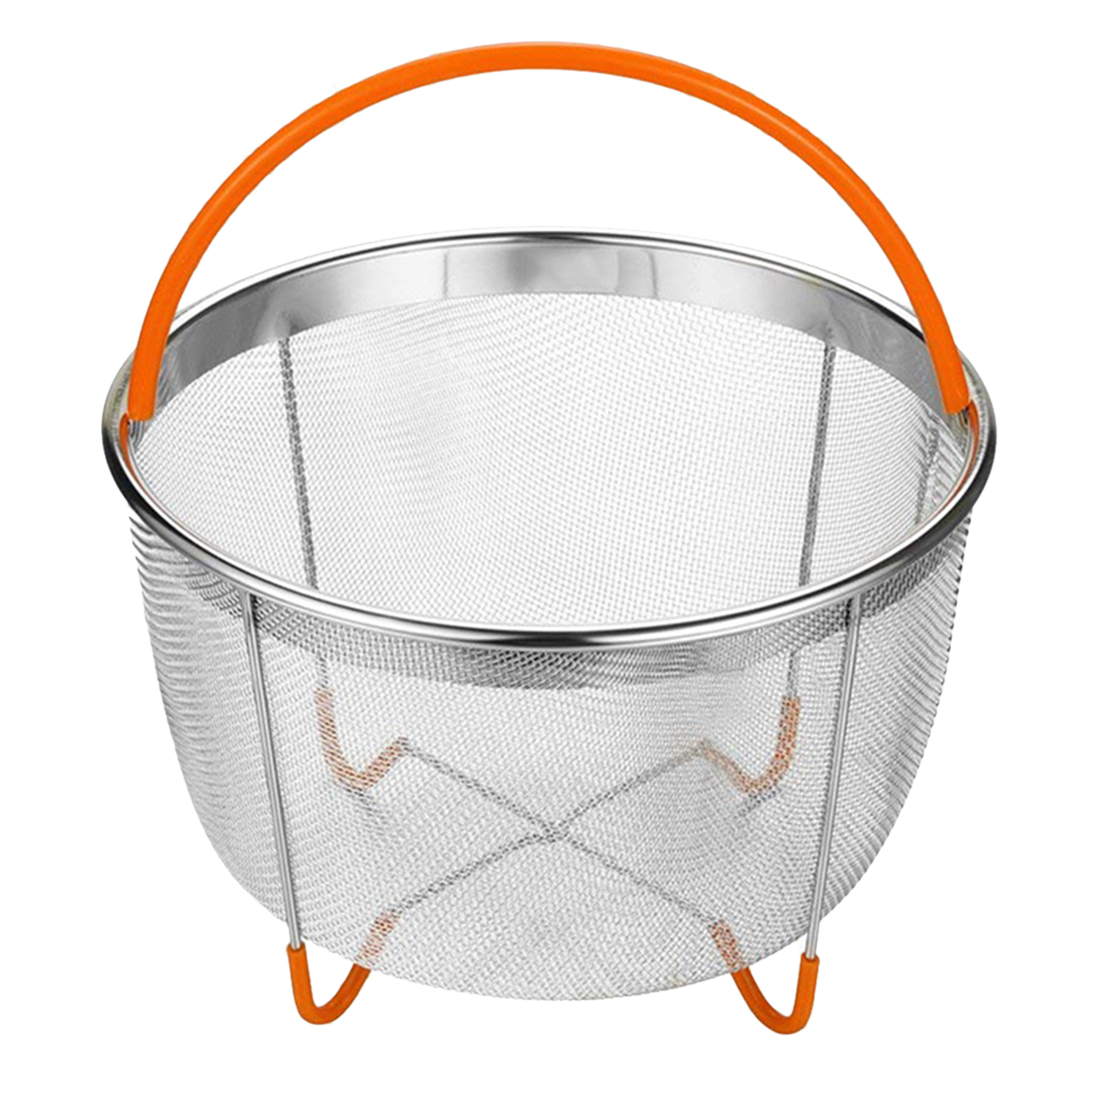 Factory Recommend 1 Pcs 6 Quart Instant Steam Basket Stainless Steel Pot Rice Cooker Mesh - Orange